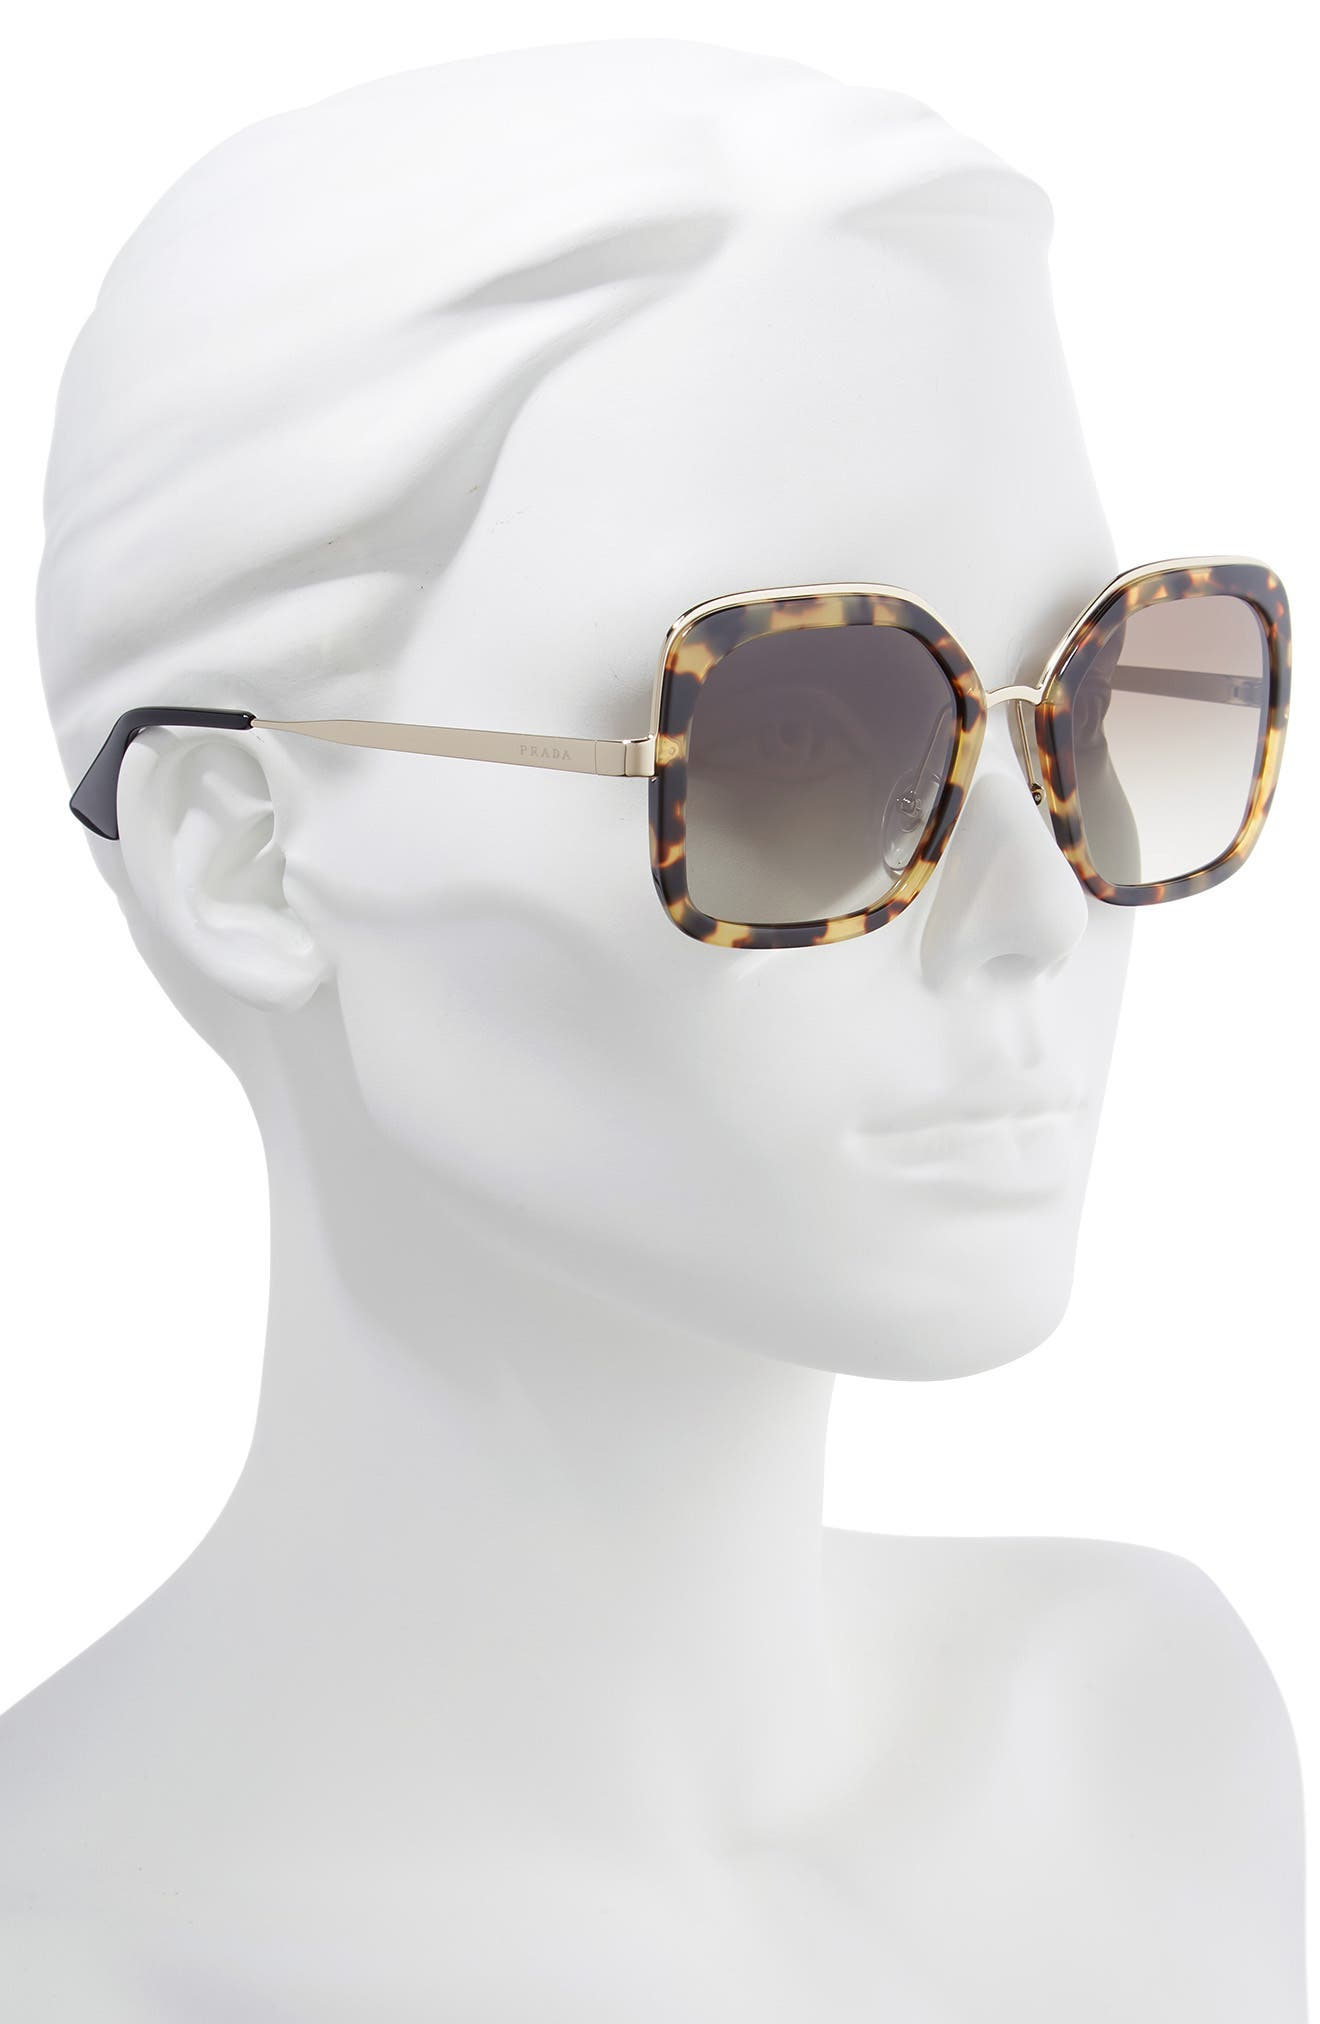 00d91ef05db8 Prada Sunglasses for Women